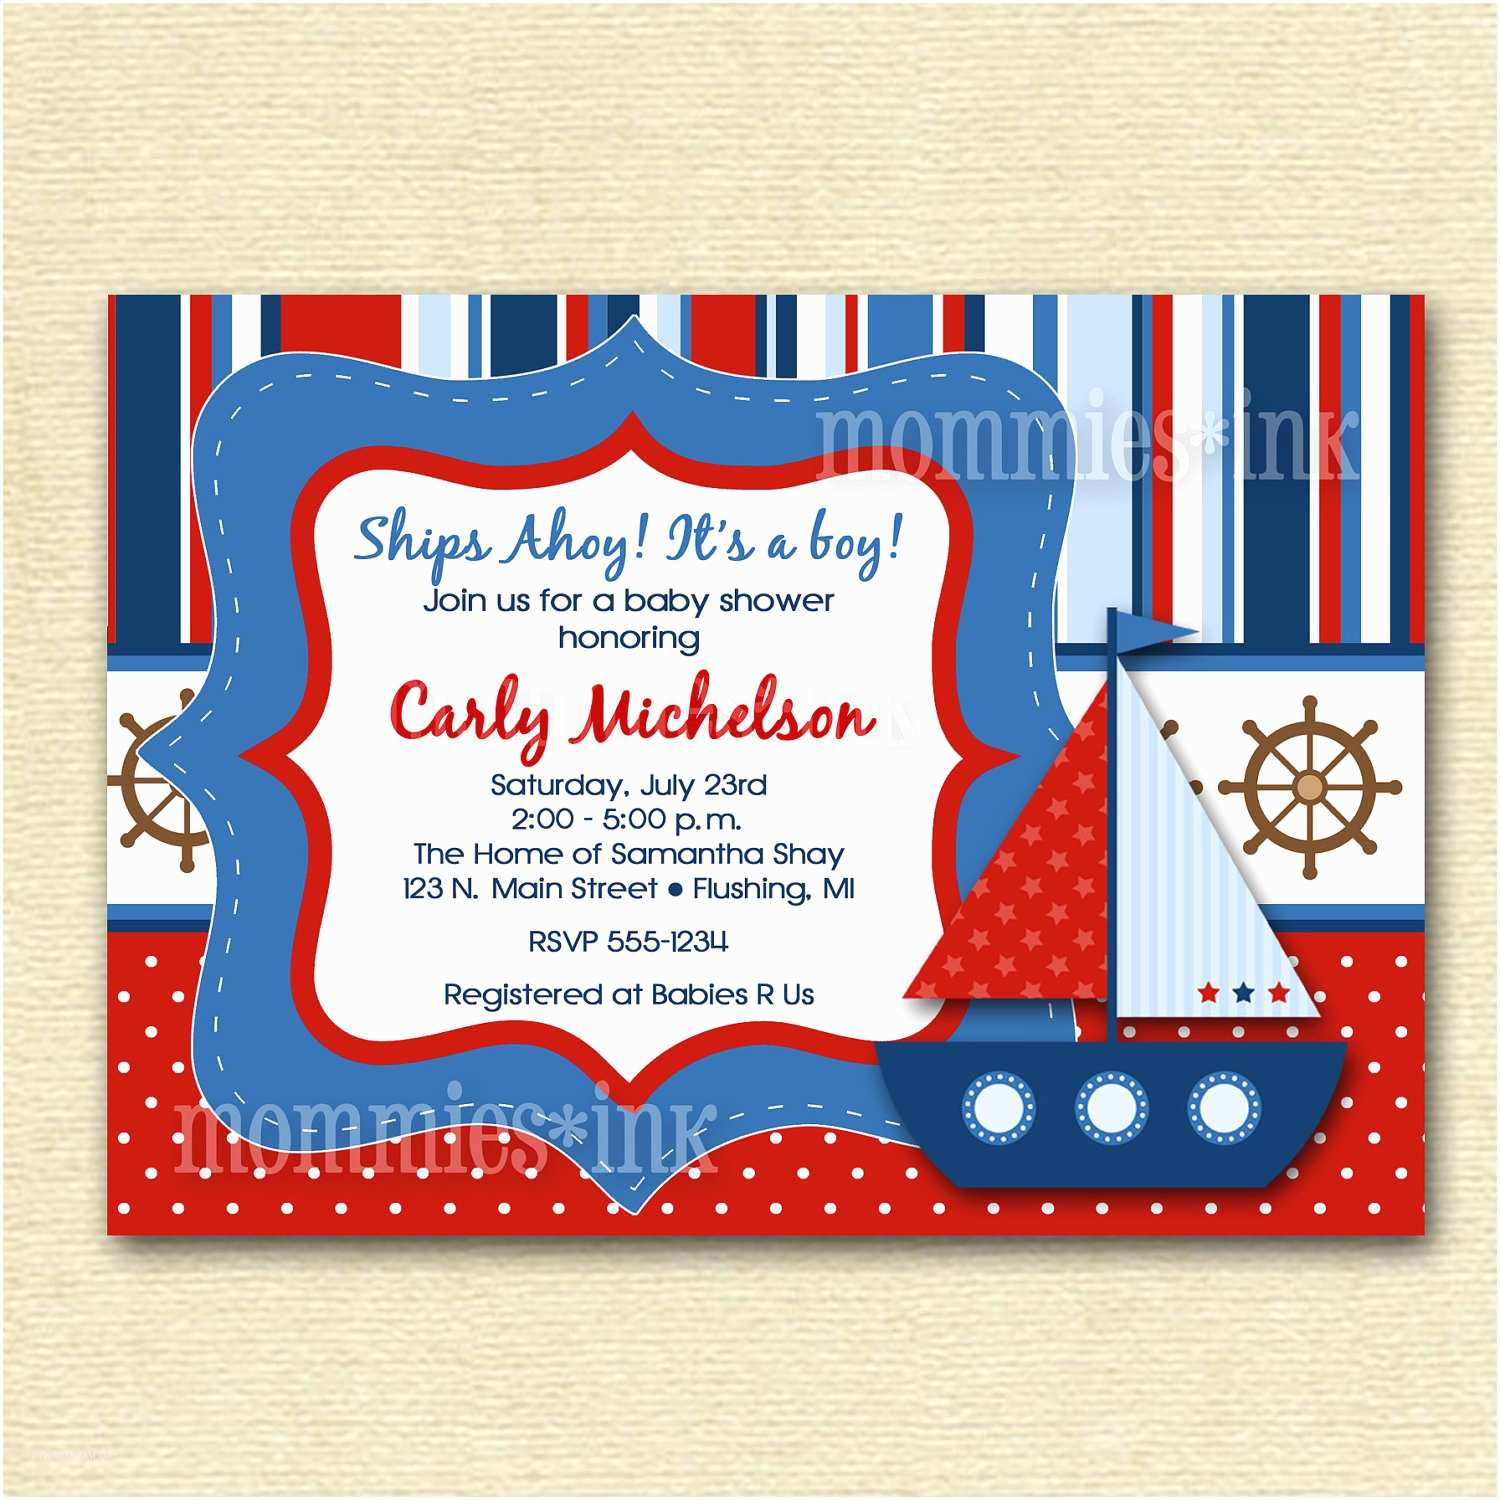 Costco Birthday Invitations Costco Baby Shower Invitations Oxyline 1e3c314fbe37